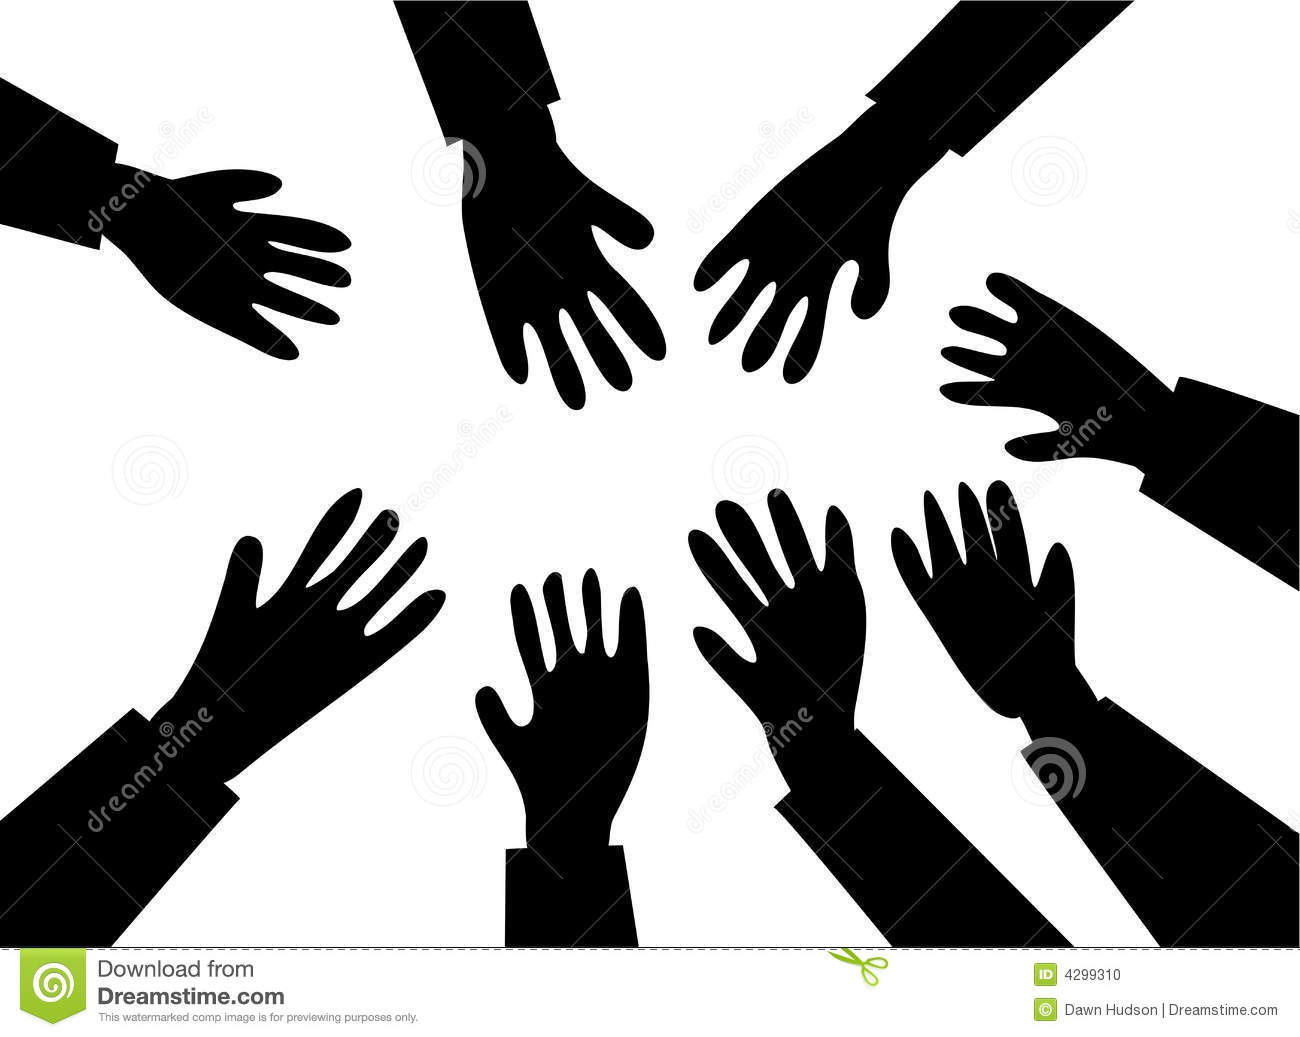 Reaching hands clipart.